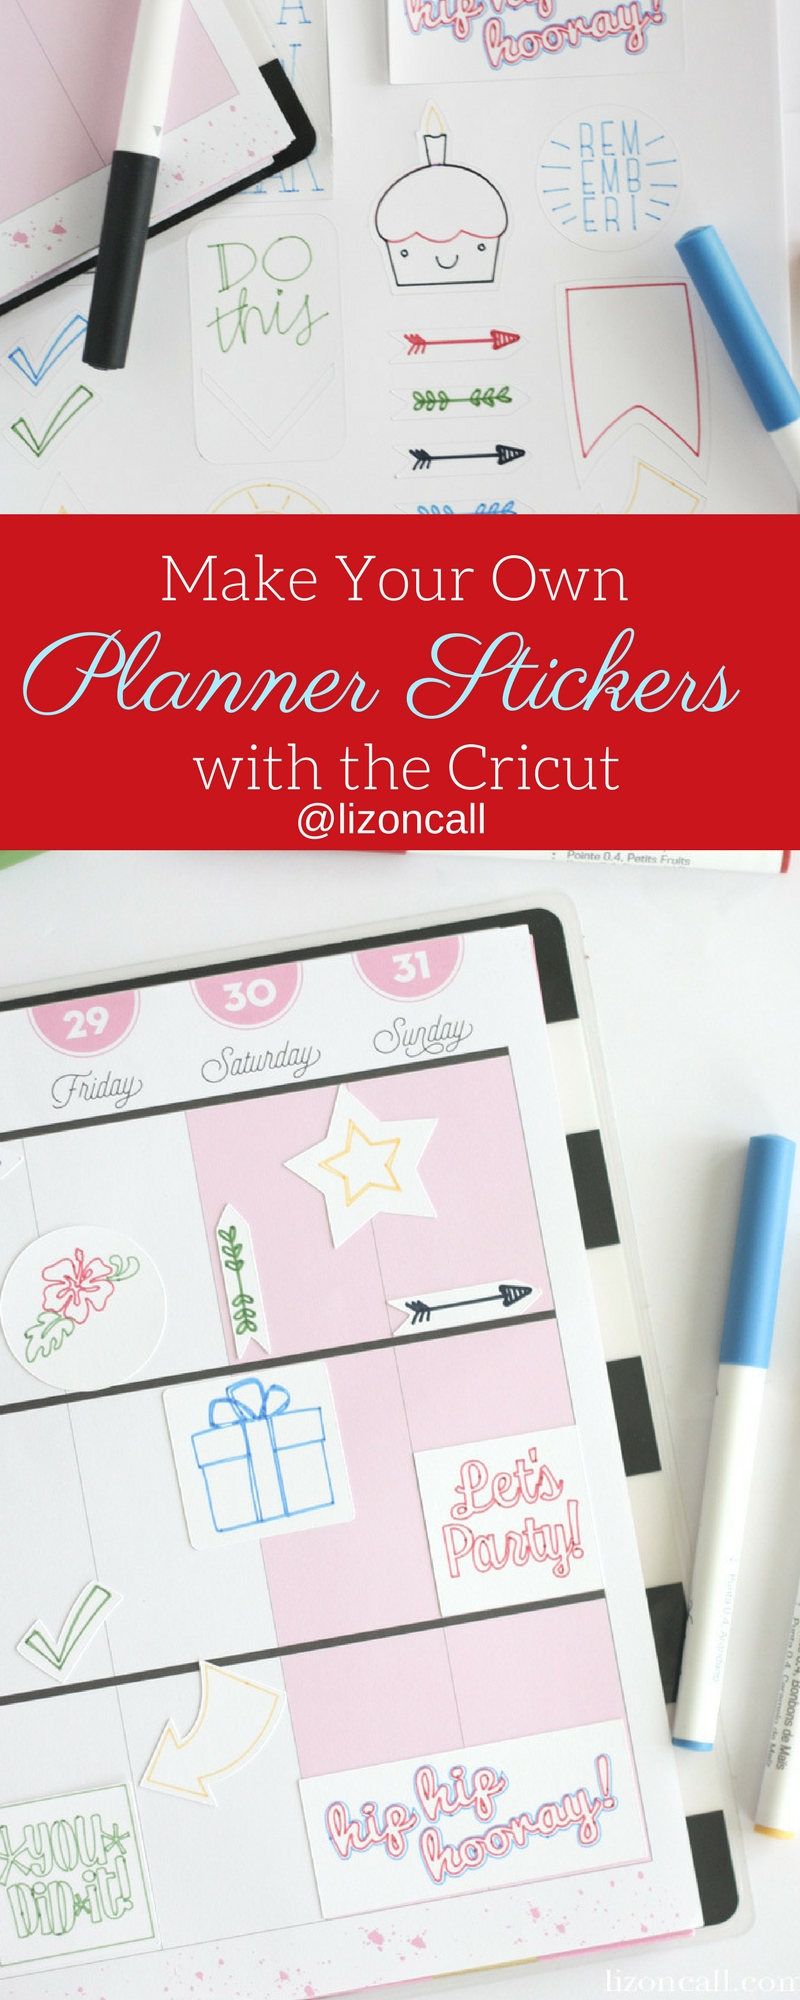 Organize your planner this year and make your own planner stickers with Cricut Maker and the pen tool.